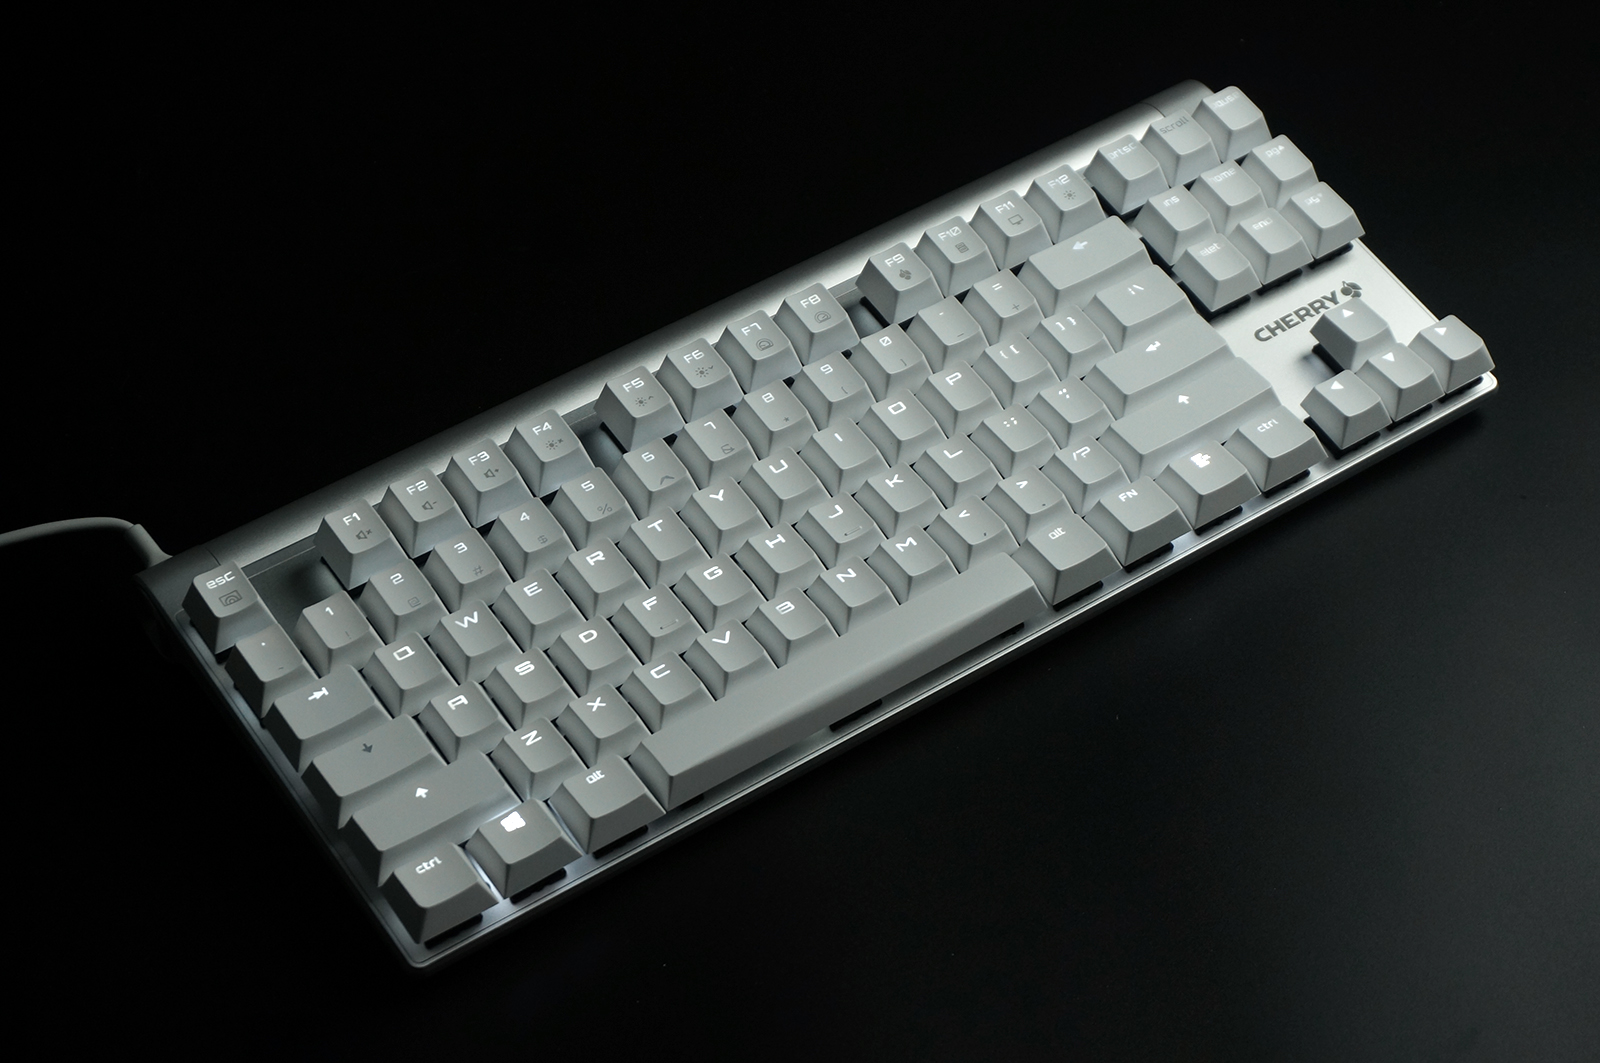 Cherry MX Board8.0机评测